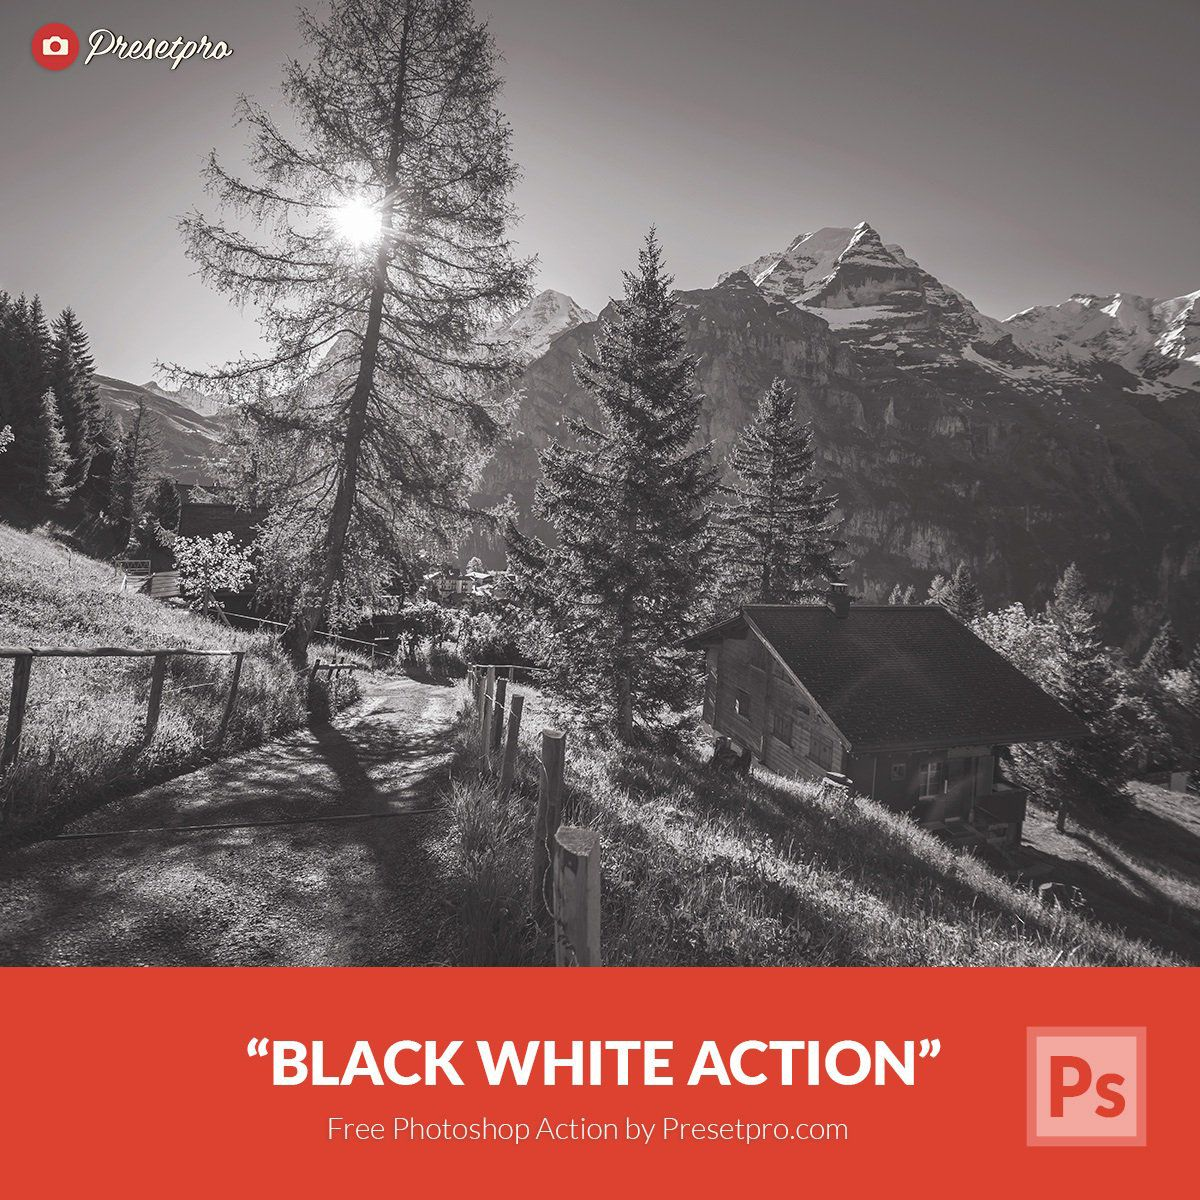 63 free Photoshop Actions for photographers | Digital Camera